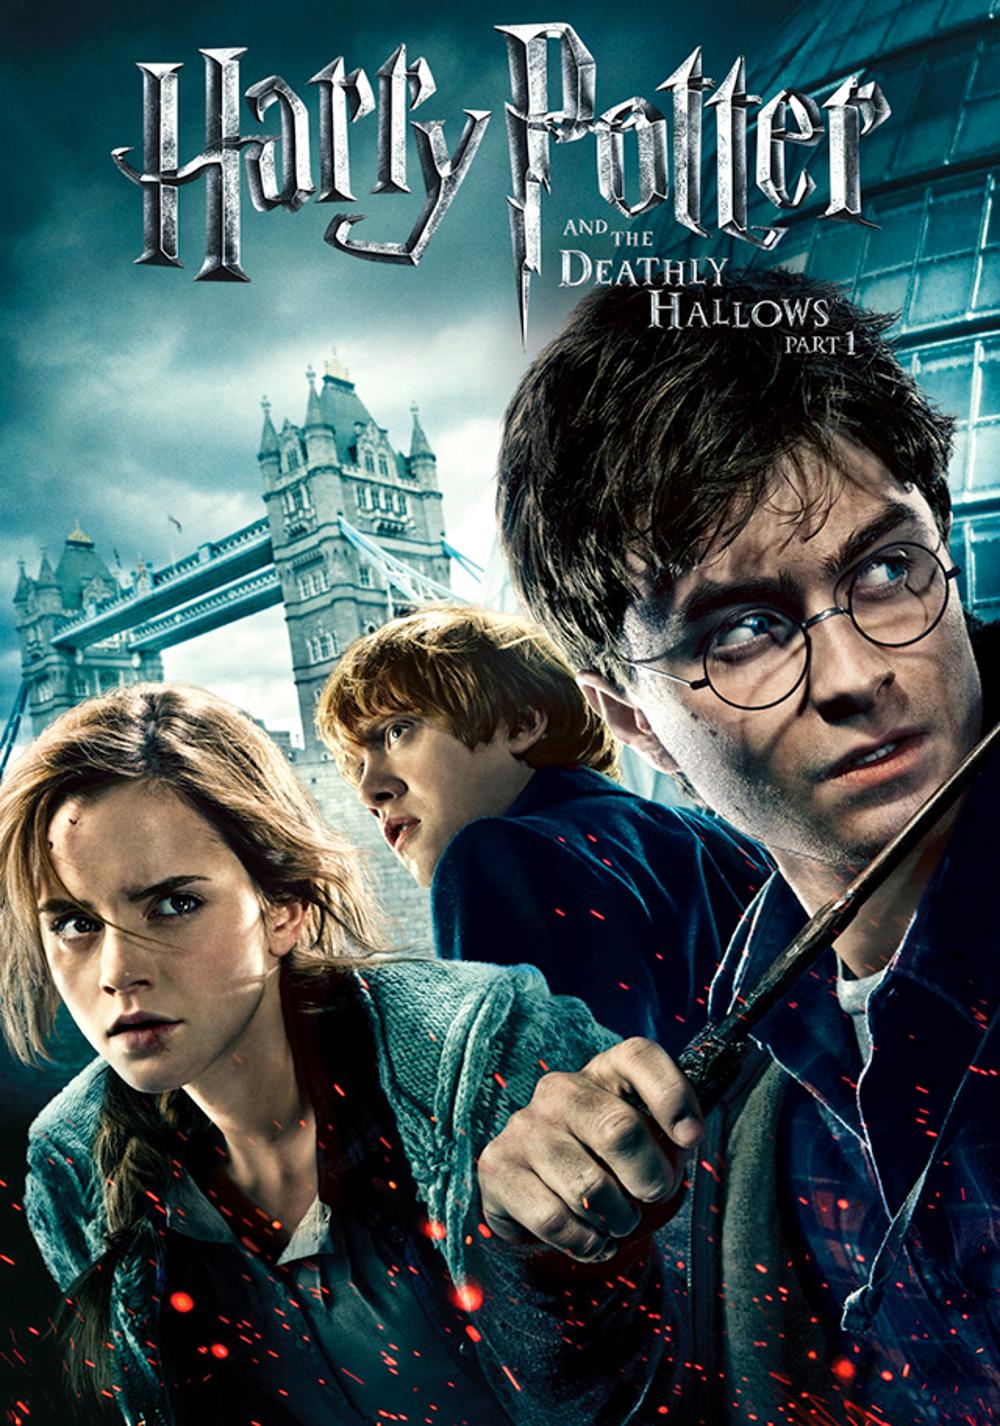 harry-potter-and-the-deathly-hallows-part-1-54f8732a98146